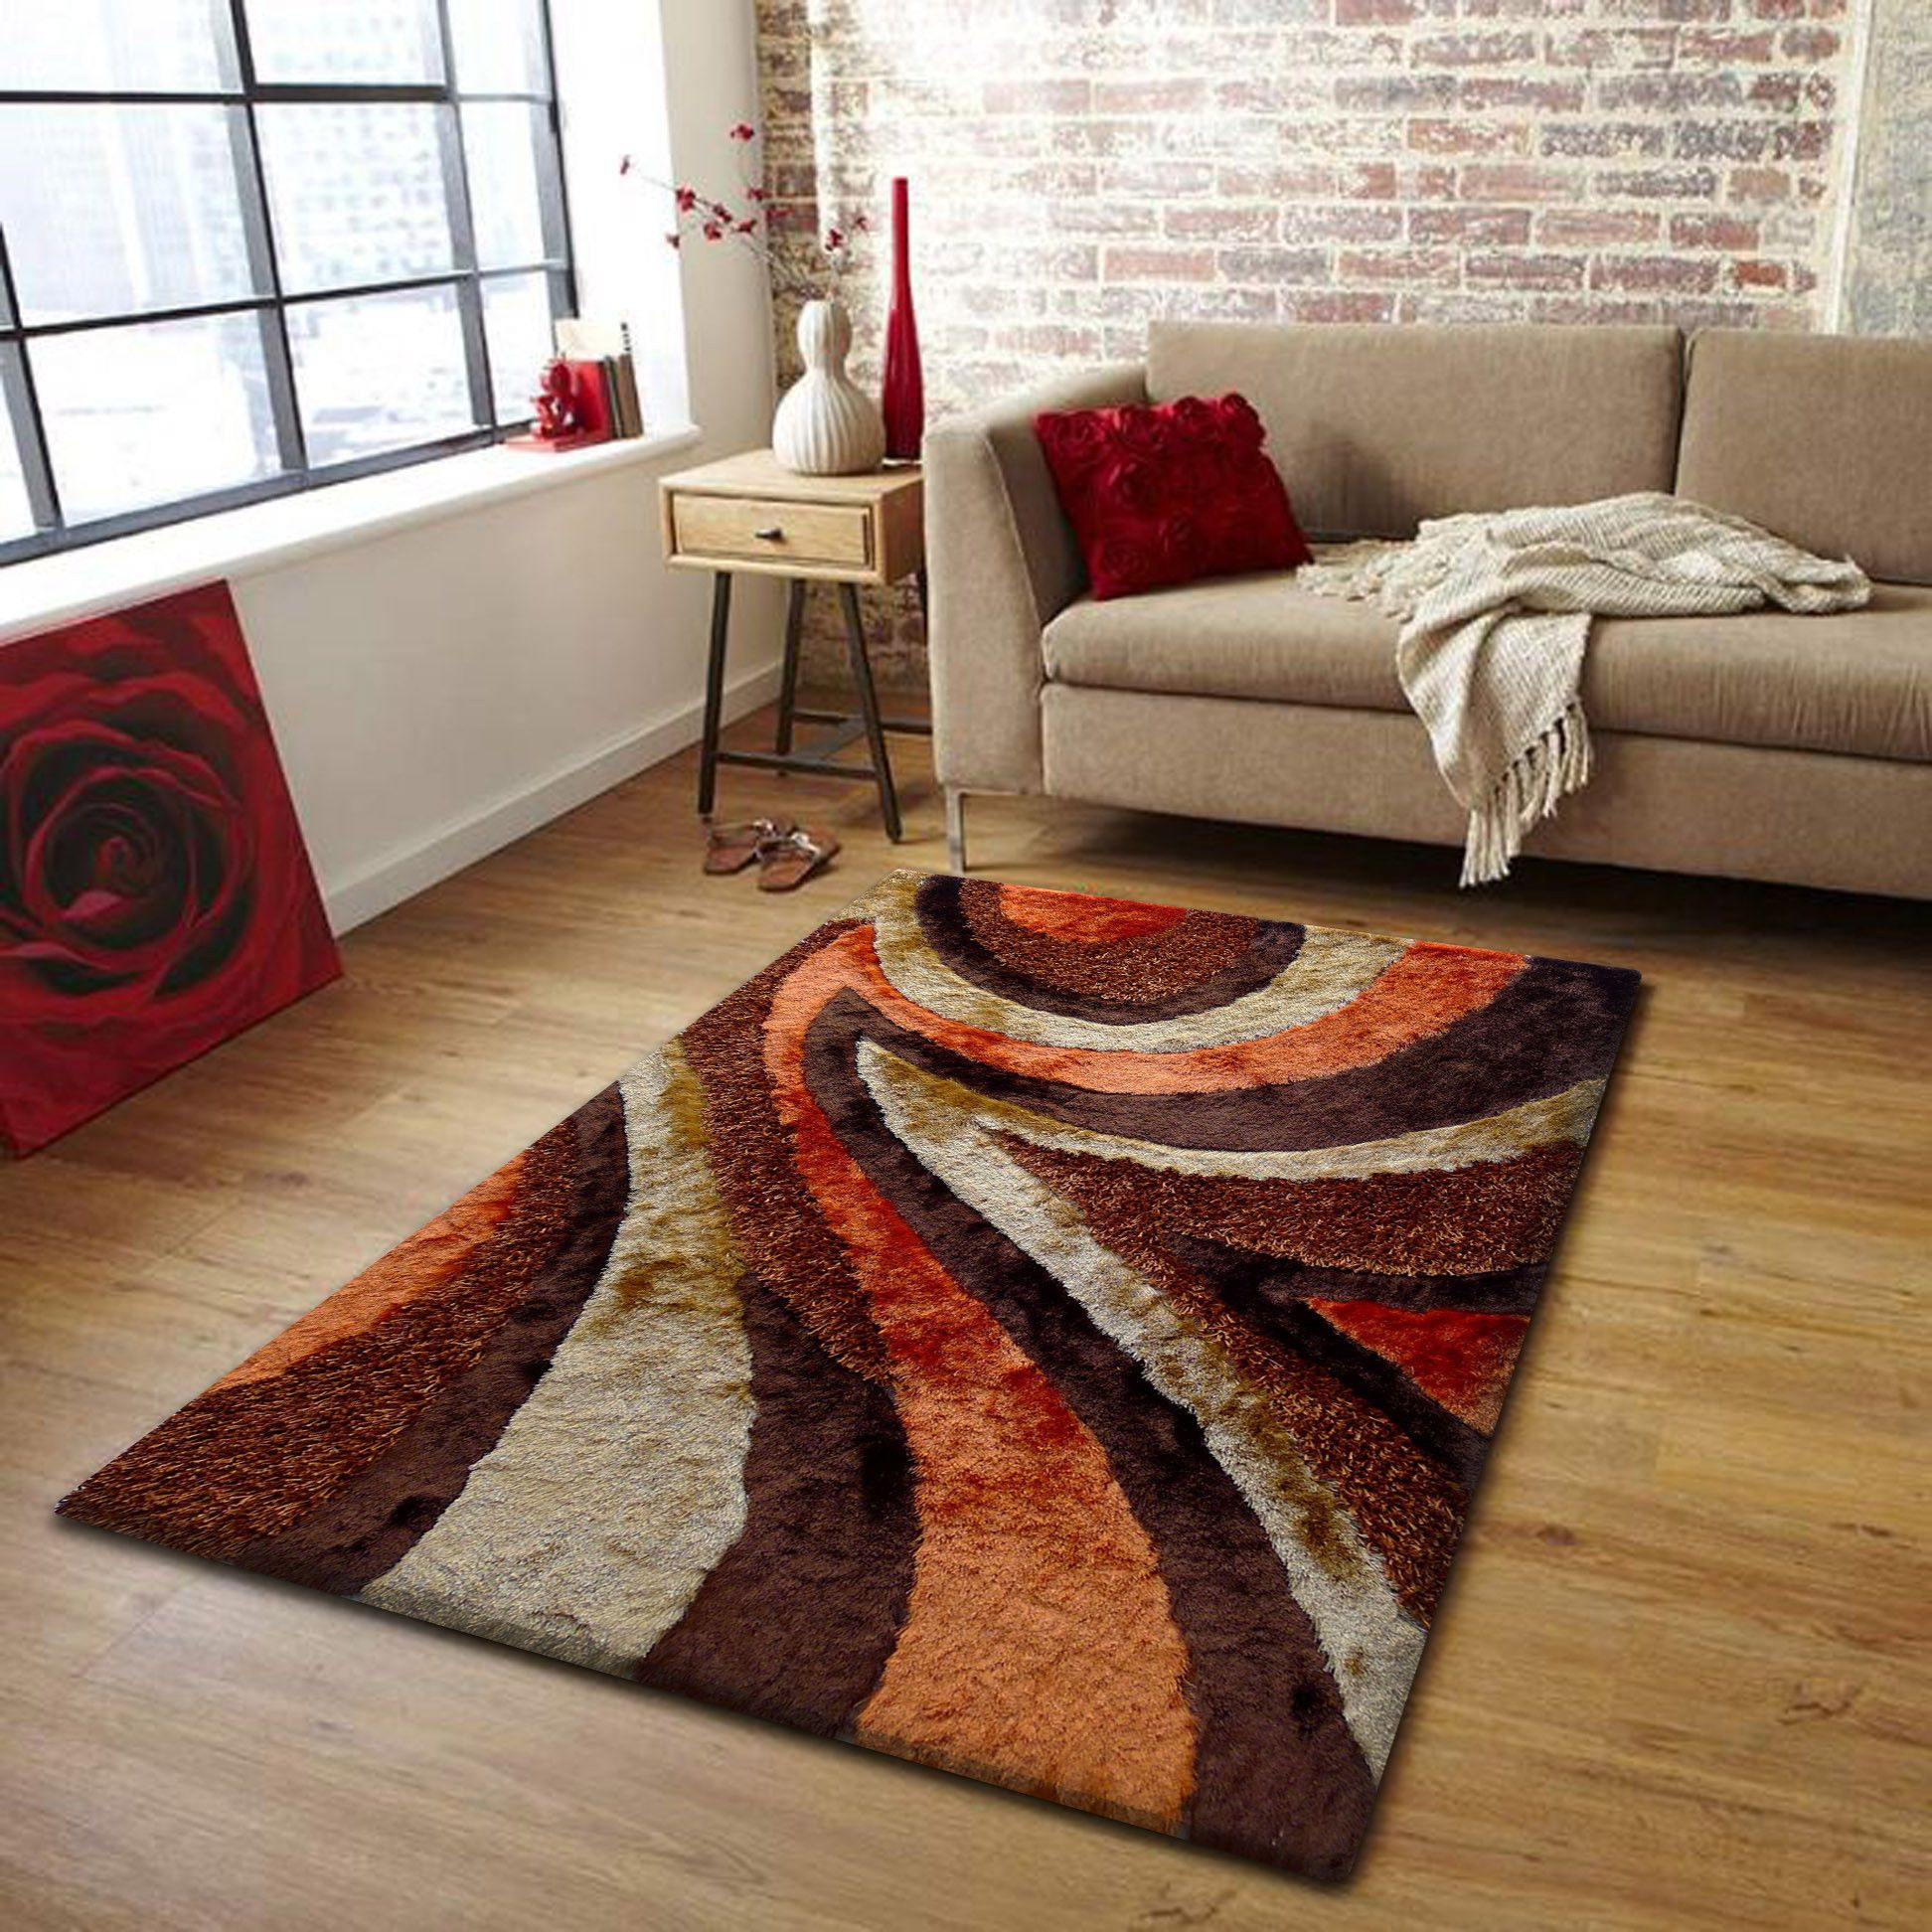 Contemporary Designer Area Rugs Are Made With The Finest Quality Of Yarn For Long Lasting Durability And Easy Clean Exquisite Colors Sophisticated